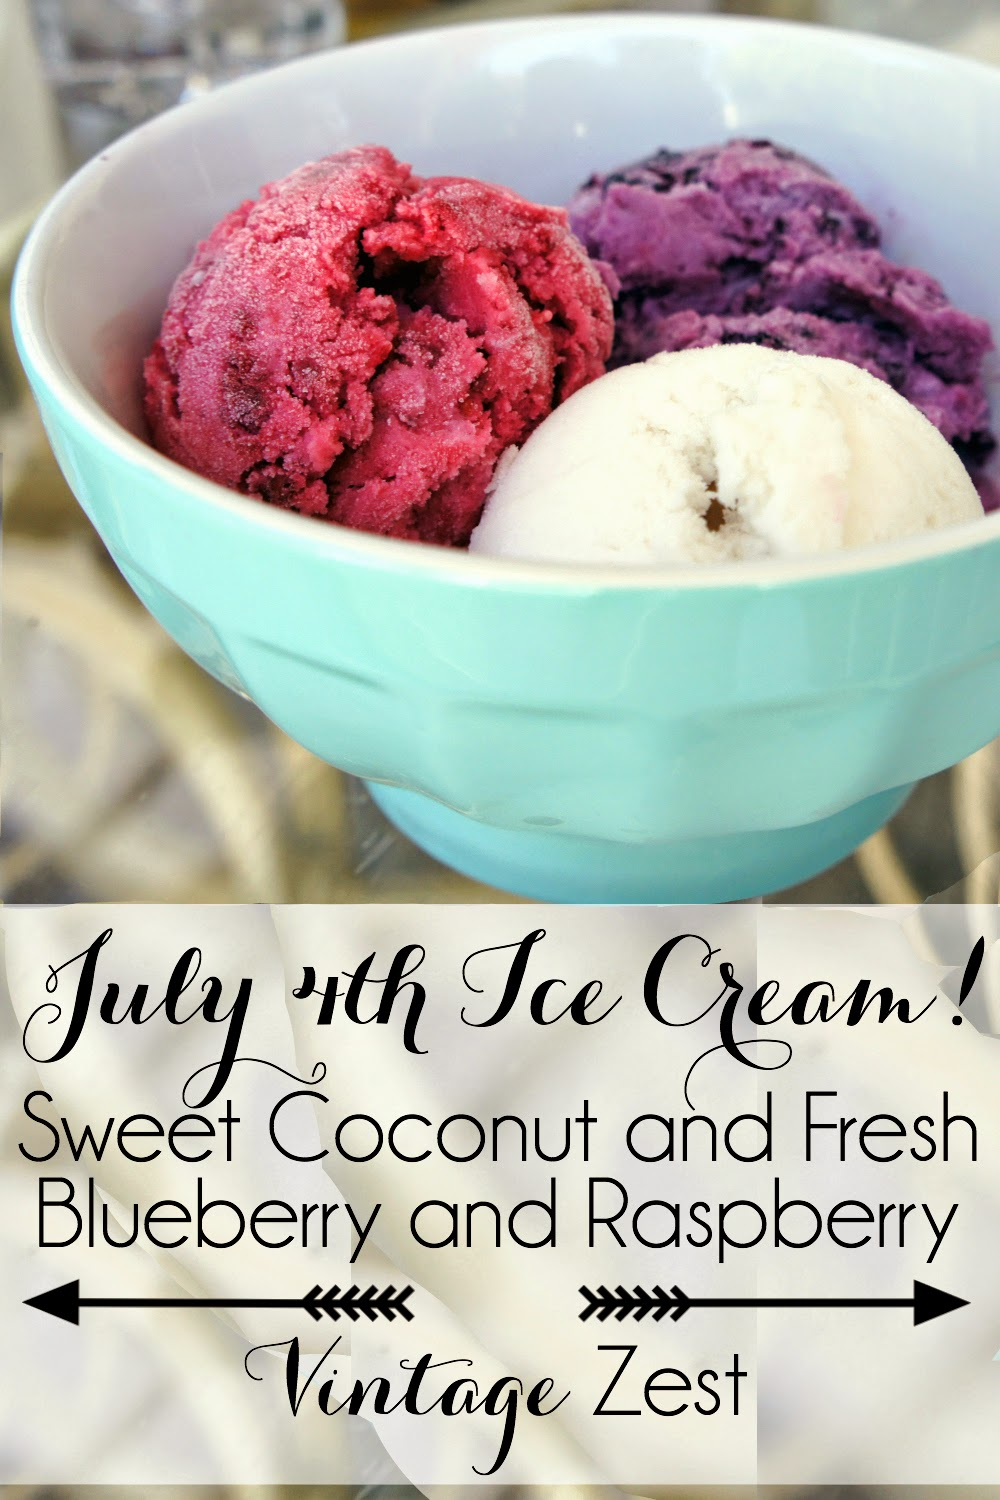 Coconut, Raspberry & Blueberry Ice Cream (AKA July 4th Ice Cream)